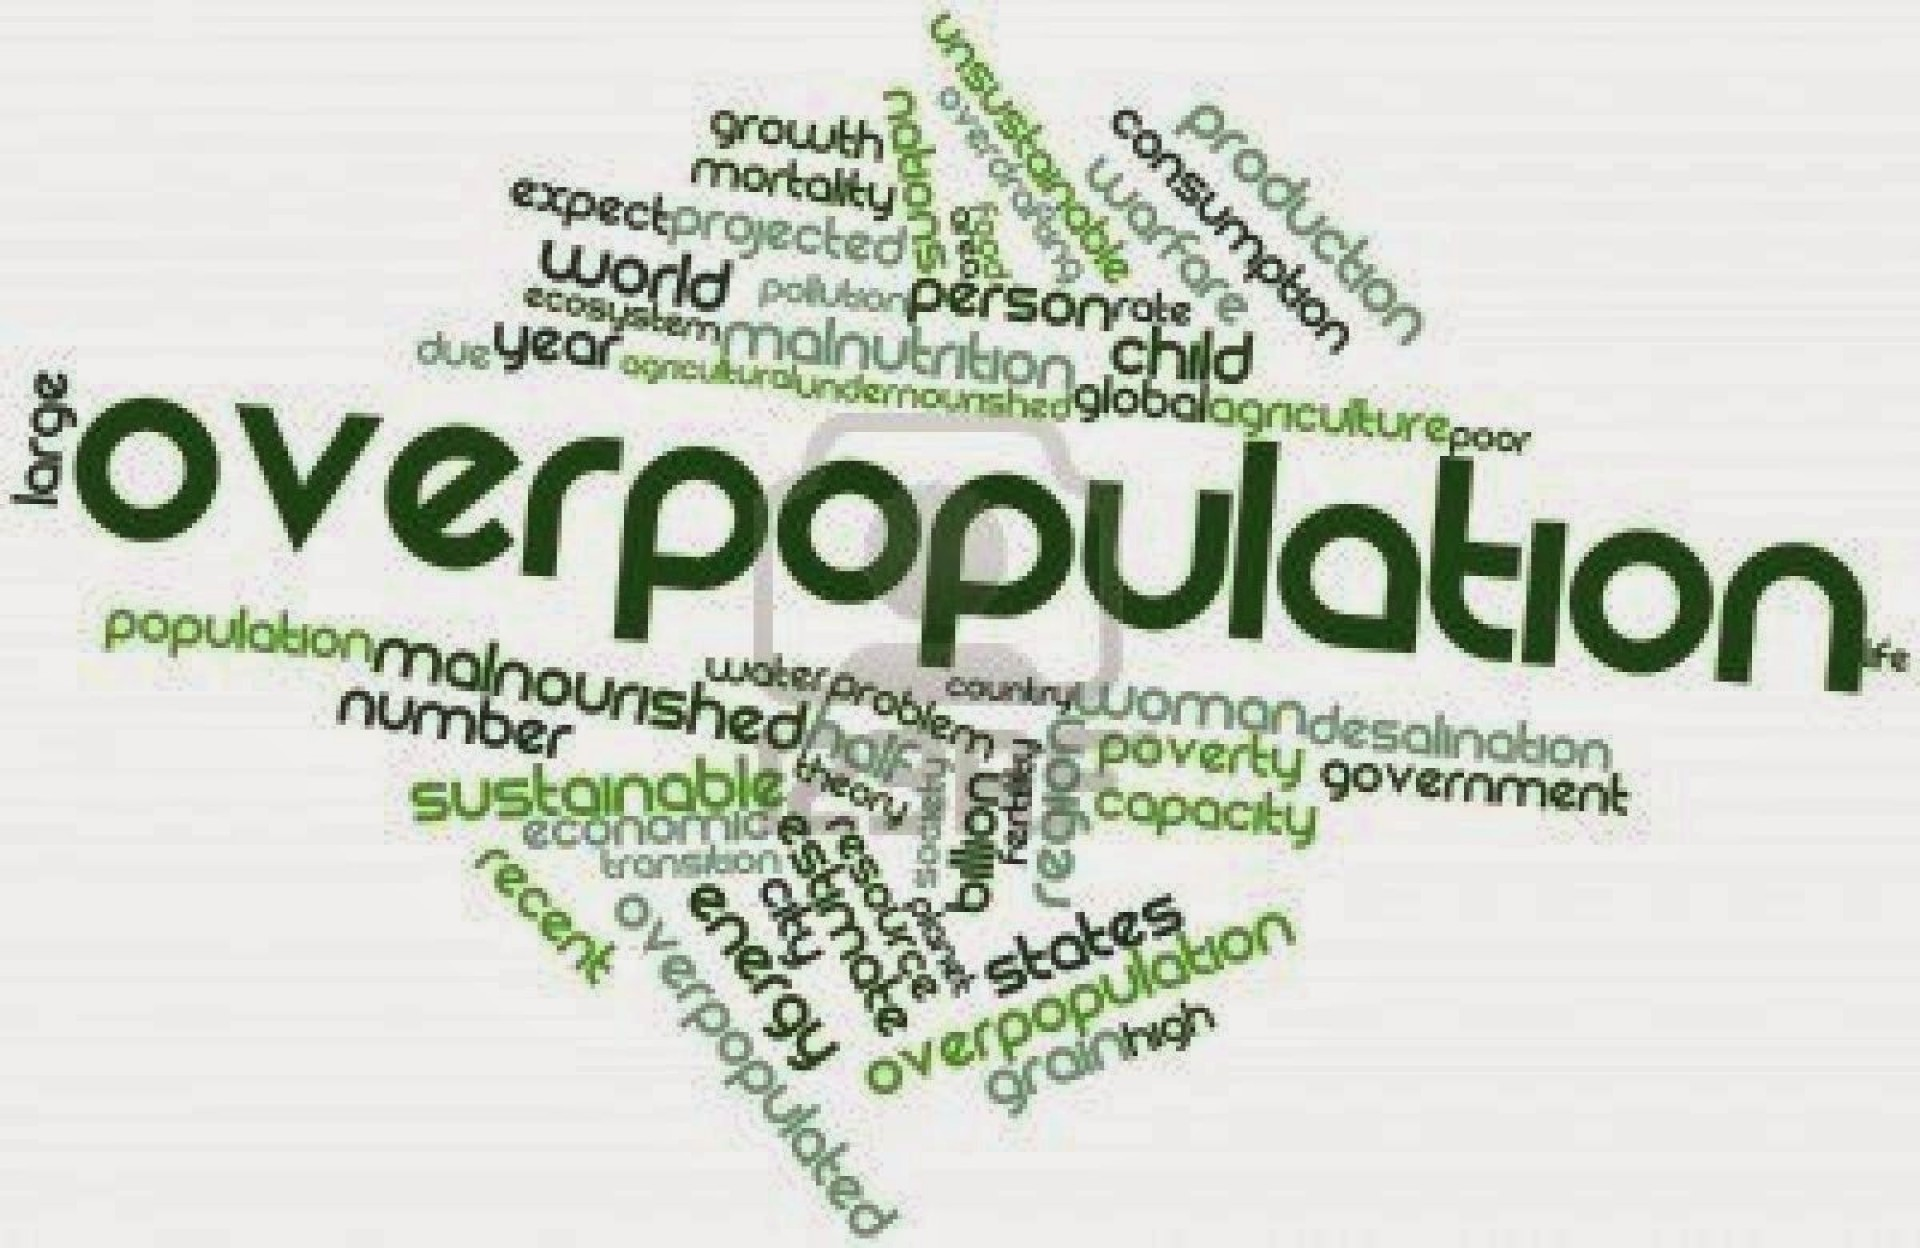 008 Over Population Cause And Effect Of Overpopulation Essay Remarkable 1920